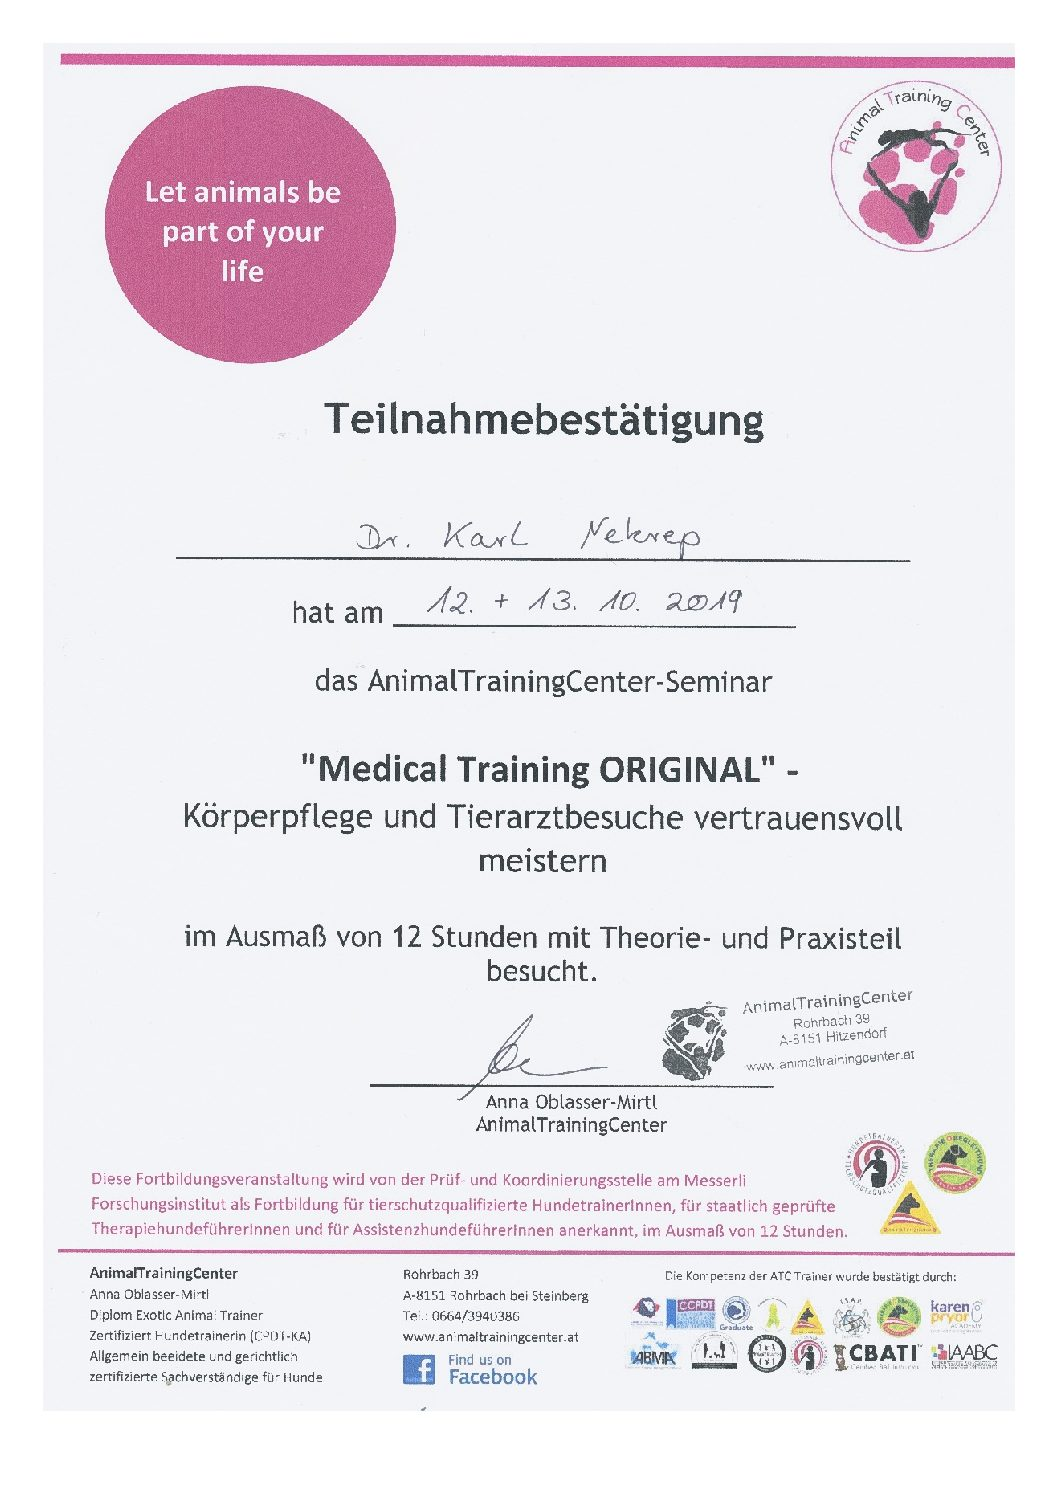 Medical Training Original, A. Oblasser-Mirtl, Animal Training Center 10 2019